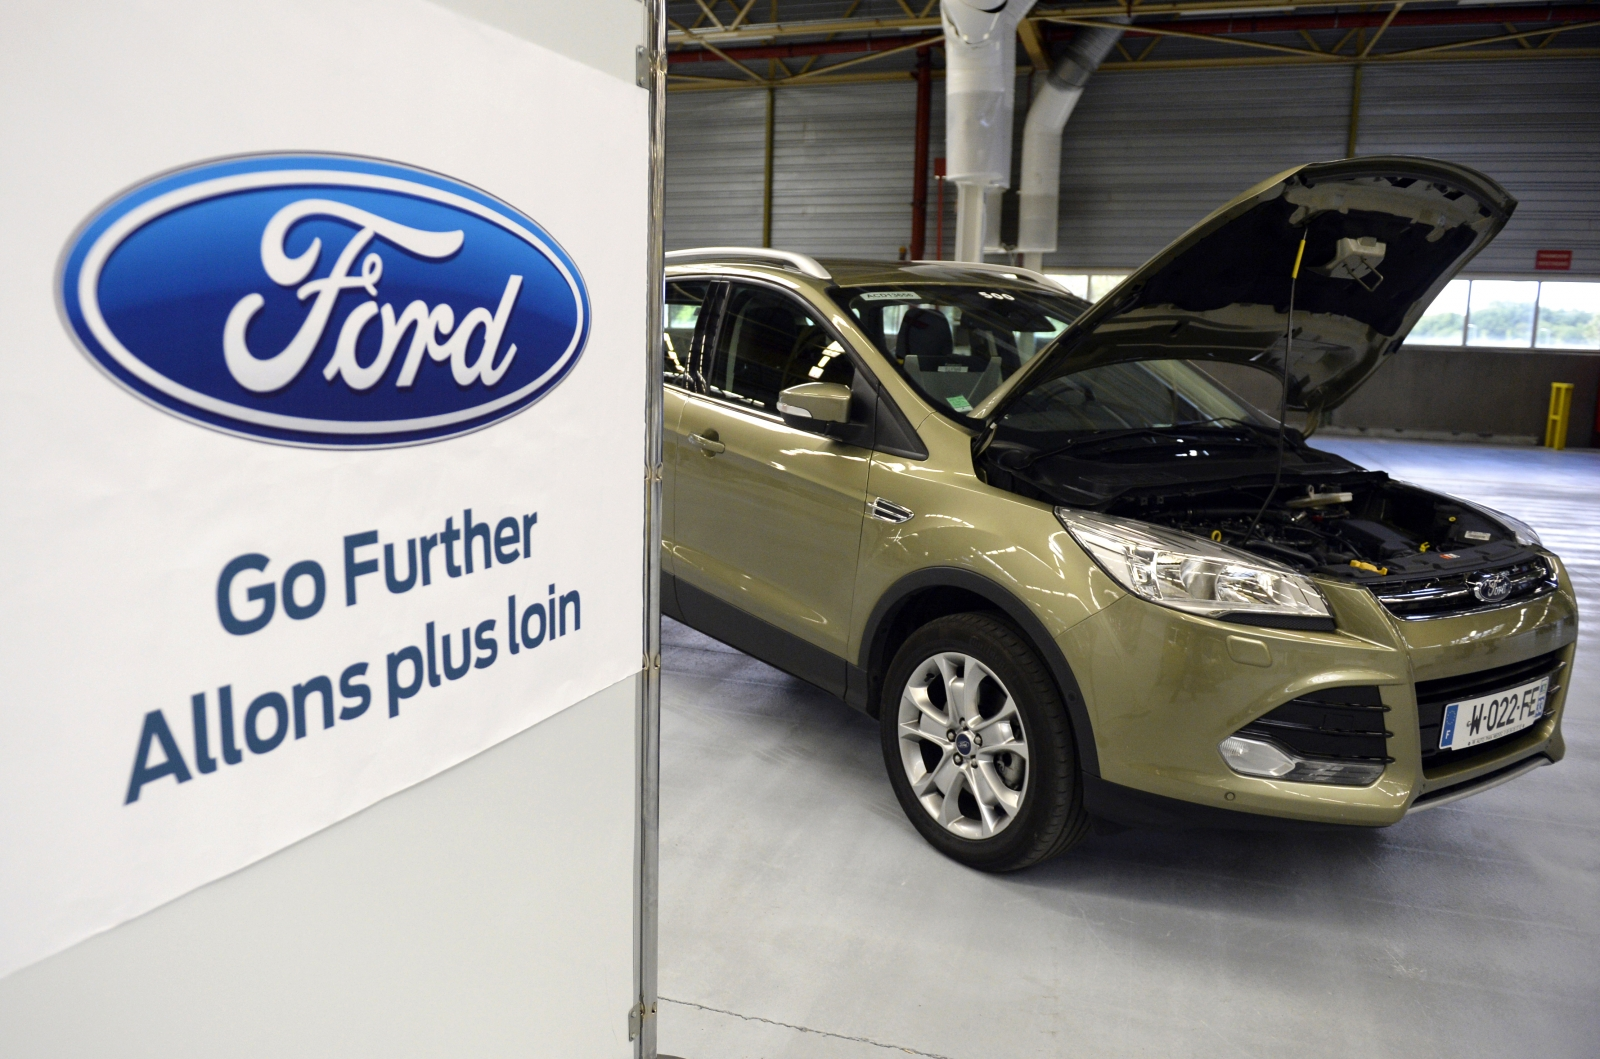 ford recalls 4 500 kugas in south africa after dozens. Black Bedroom Furniture Sets. Home Design Ideas